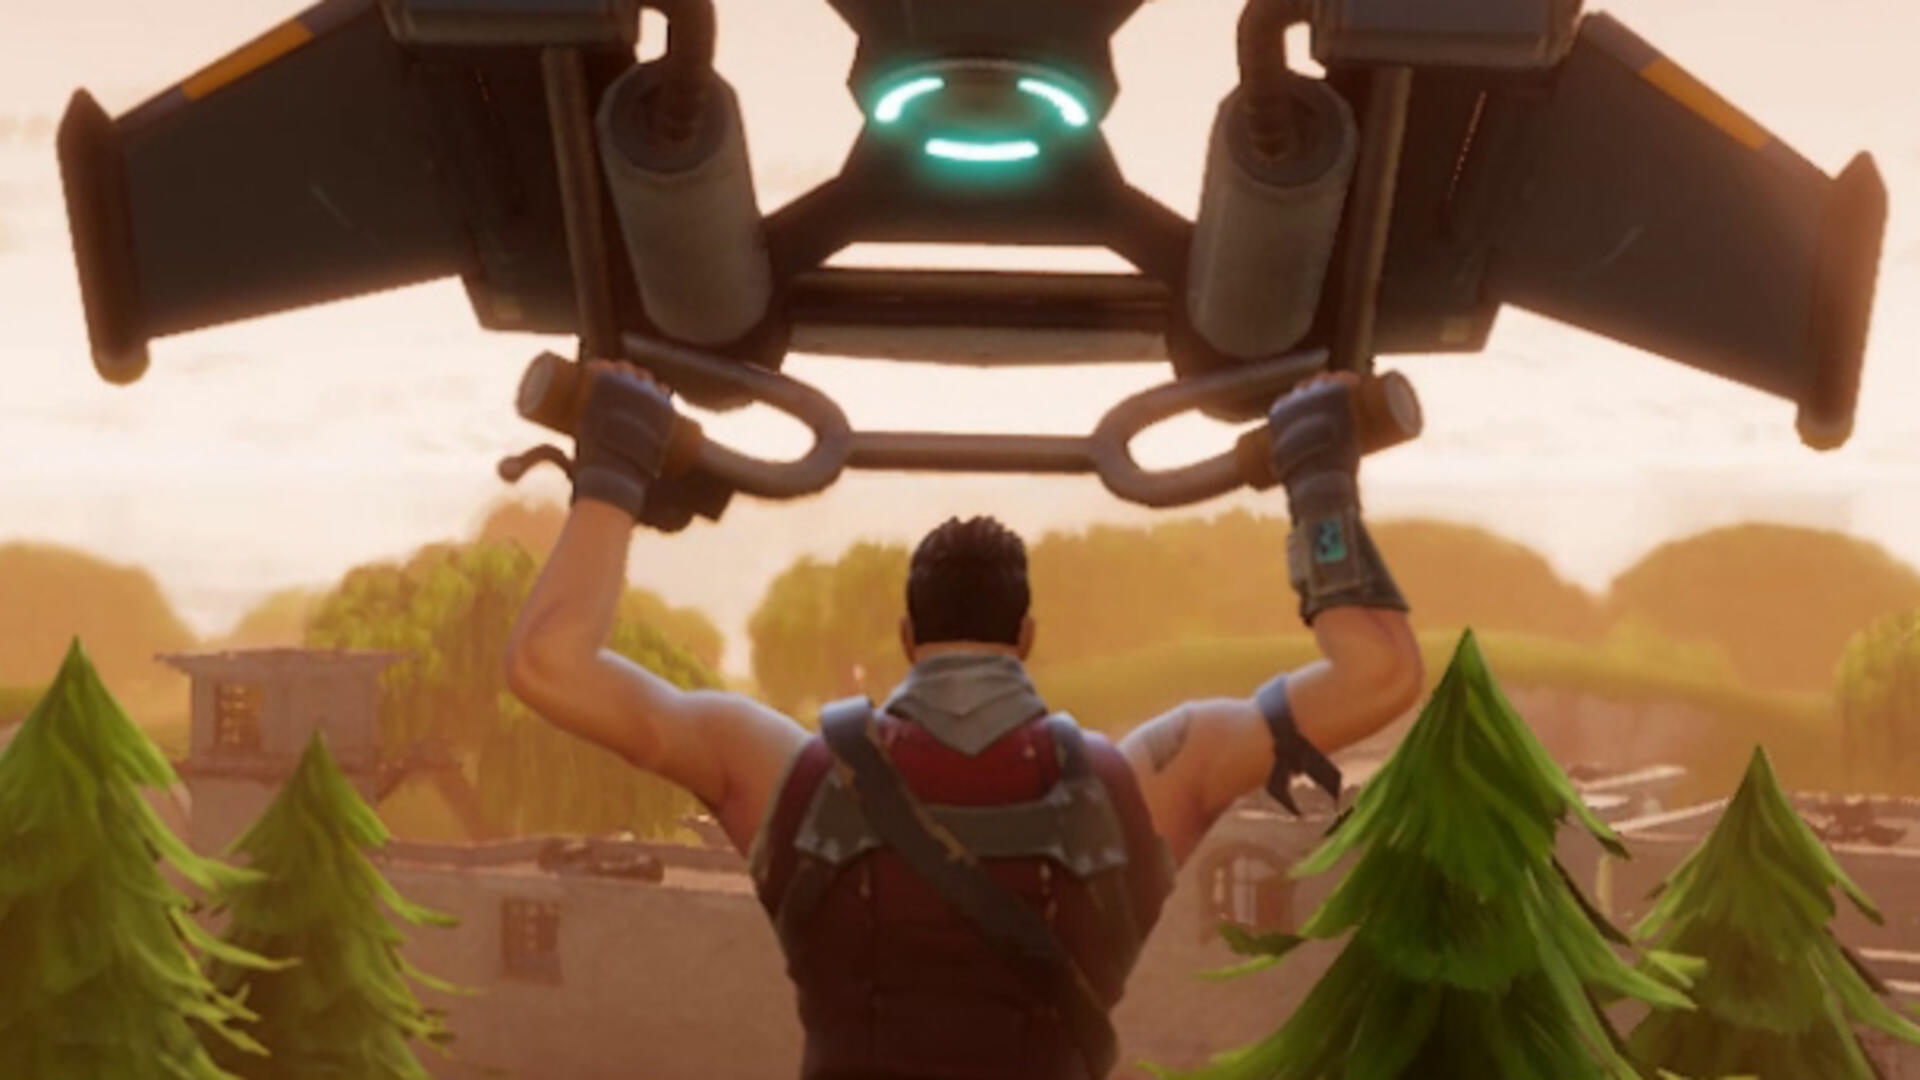 Fortnite Battle Royale's Combat Pro Control Scheme Comes to Save the World in V3.4 Update